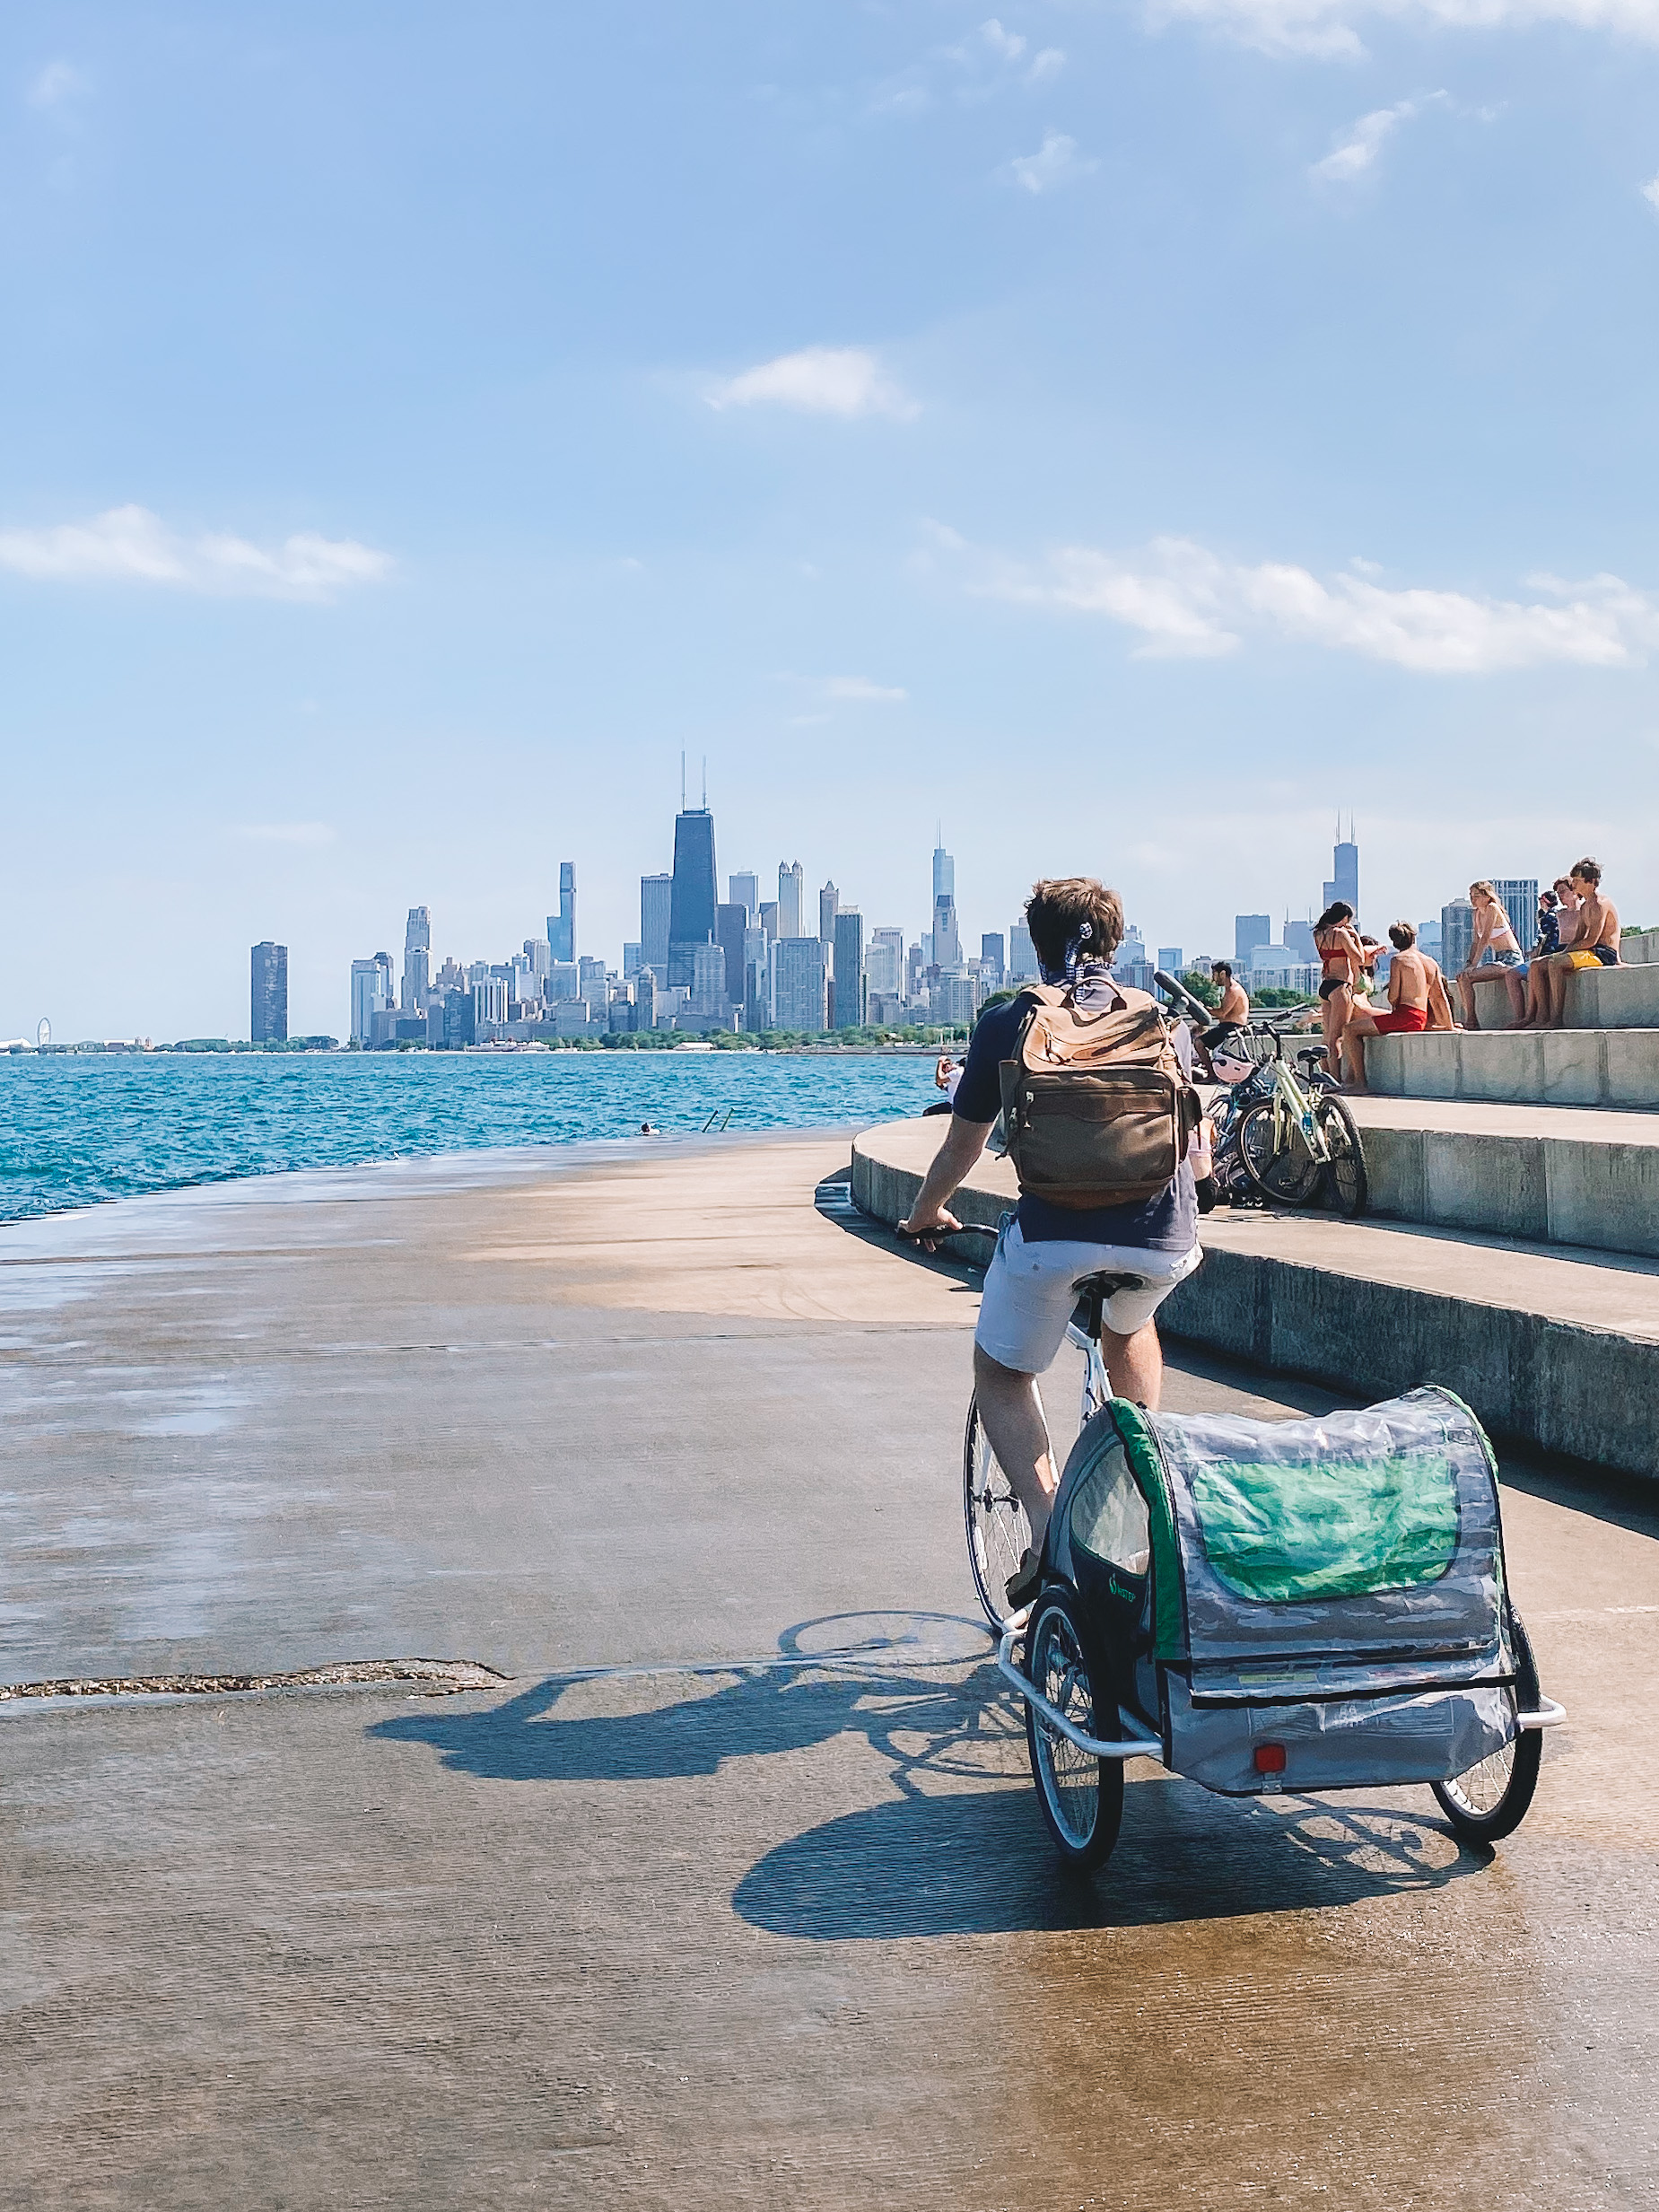 Biking the Chicago Lakefront Trail with Small Children